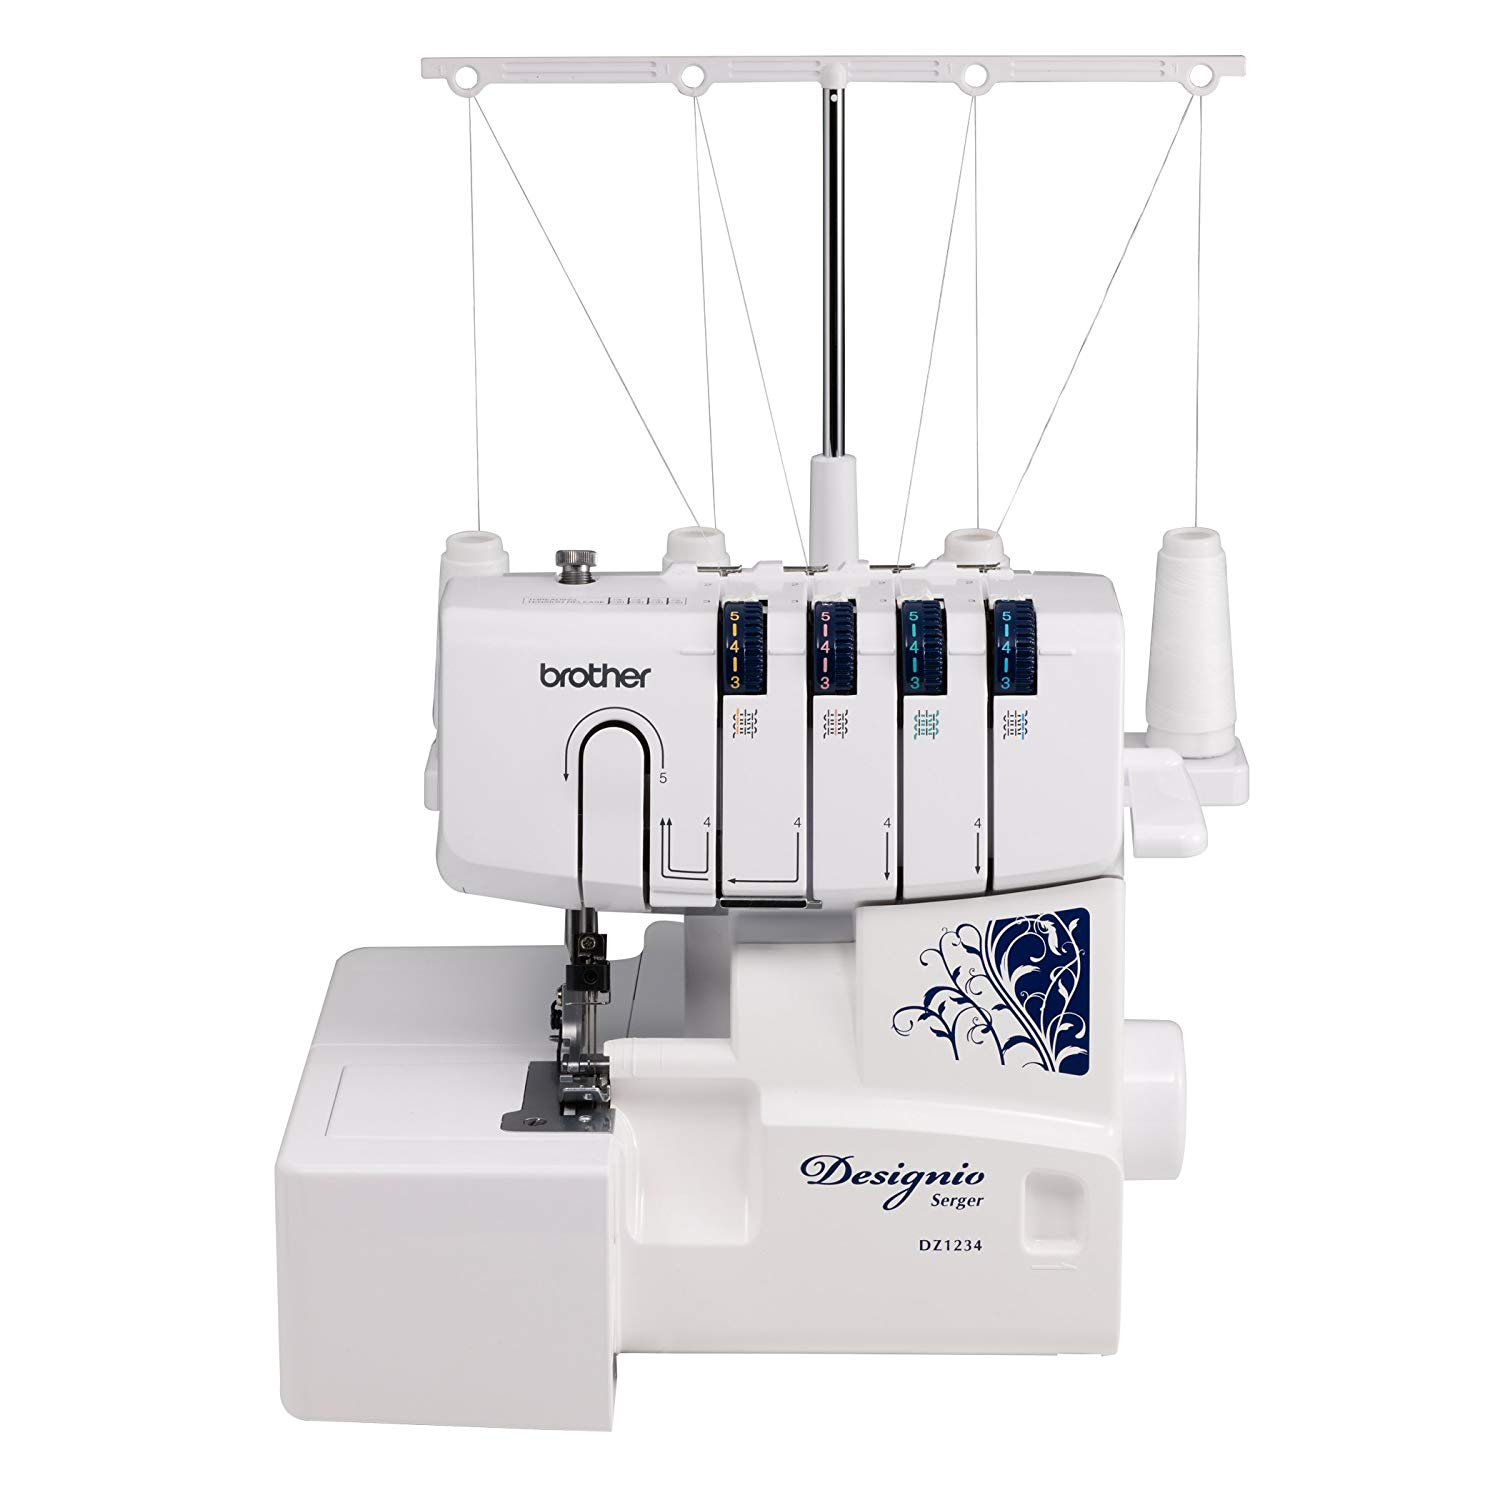 Brother Designio Series serger sewing machine